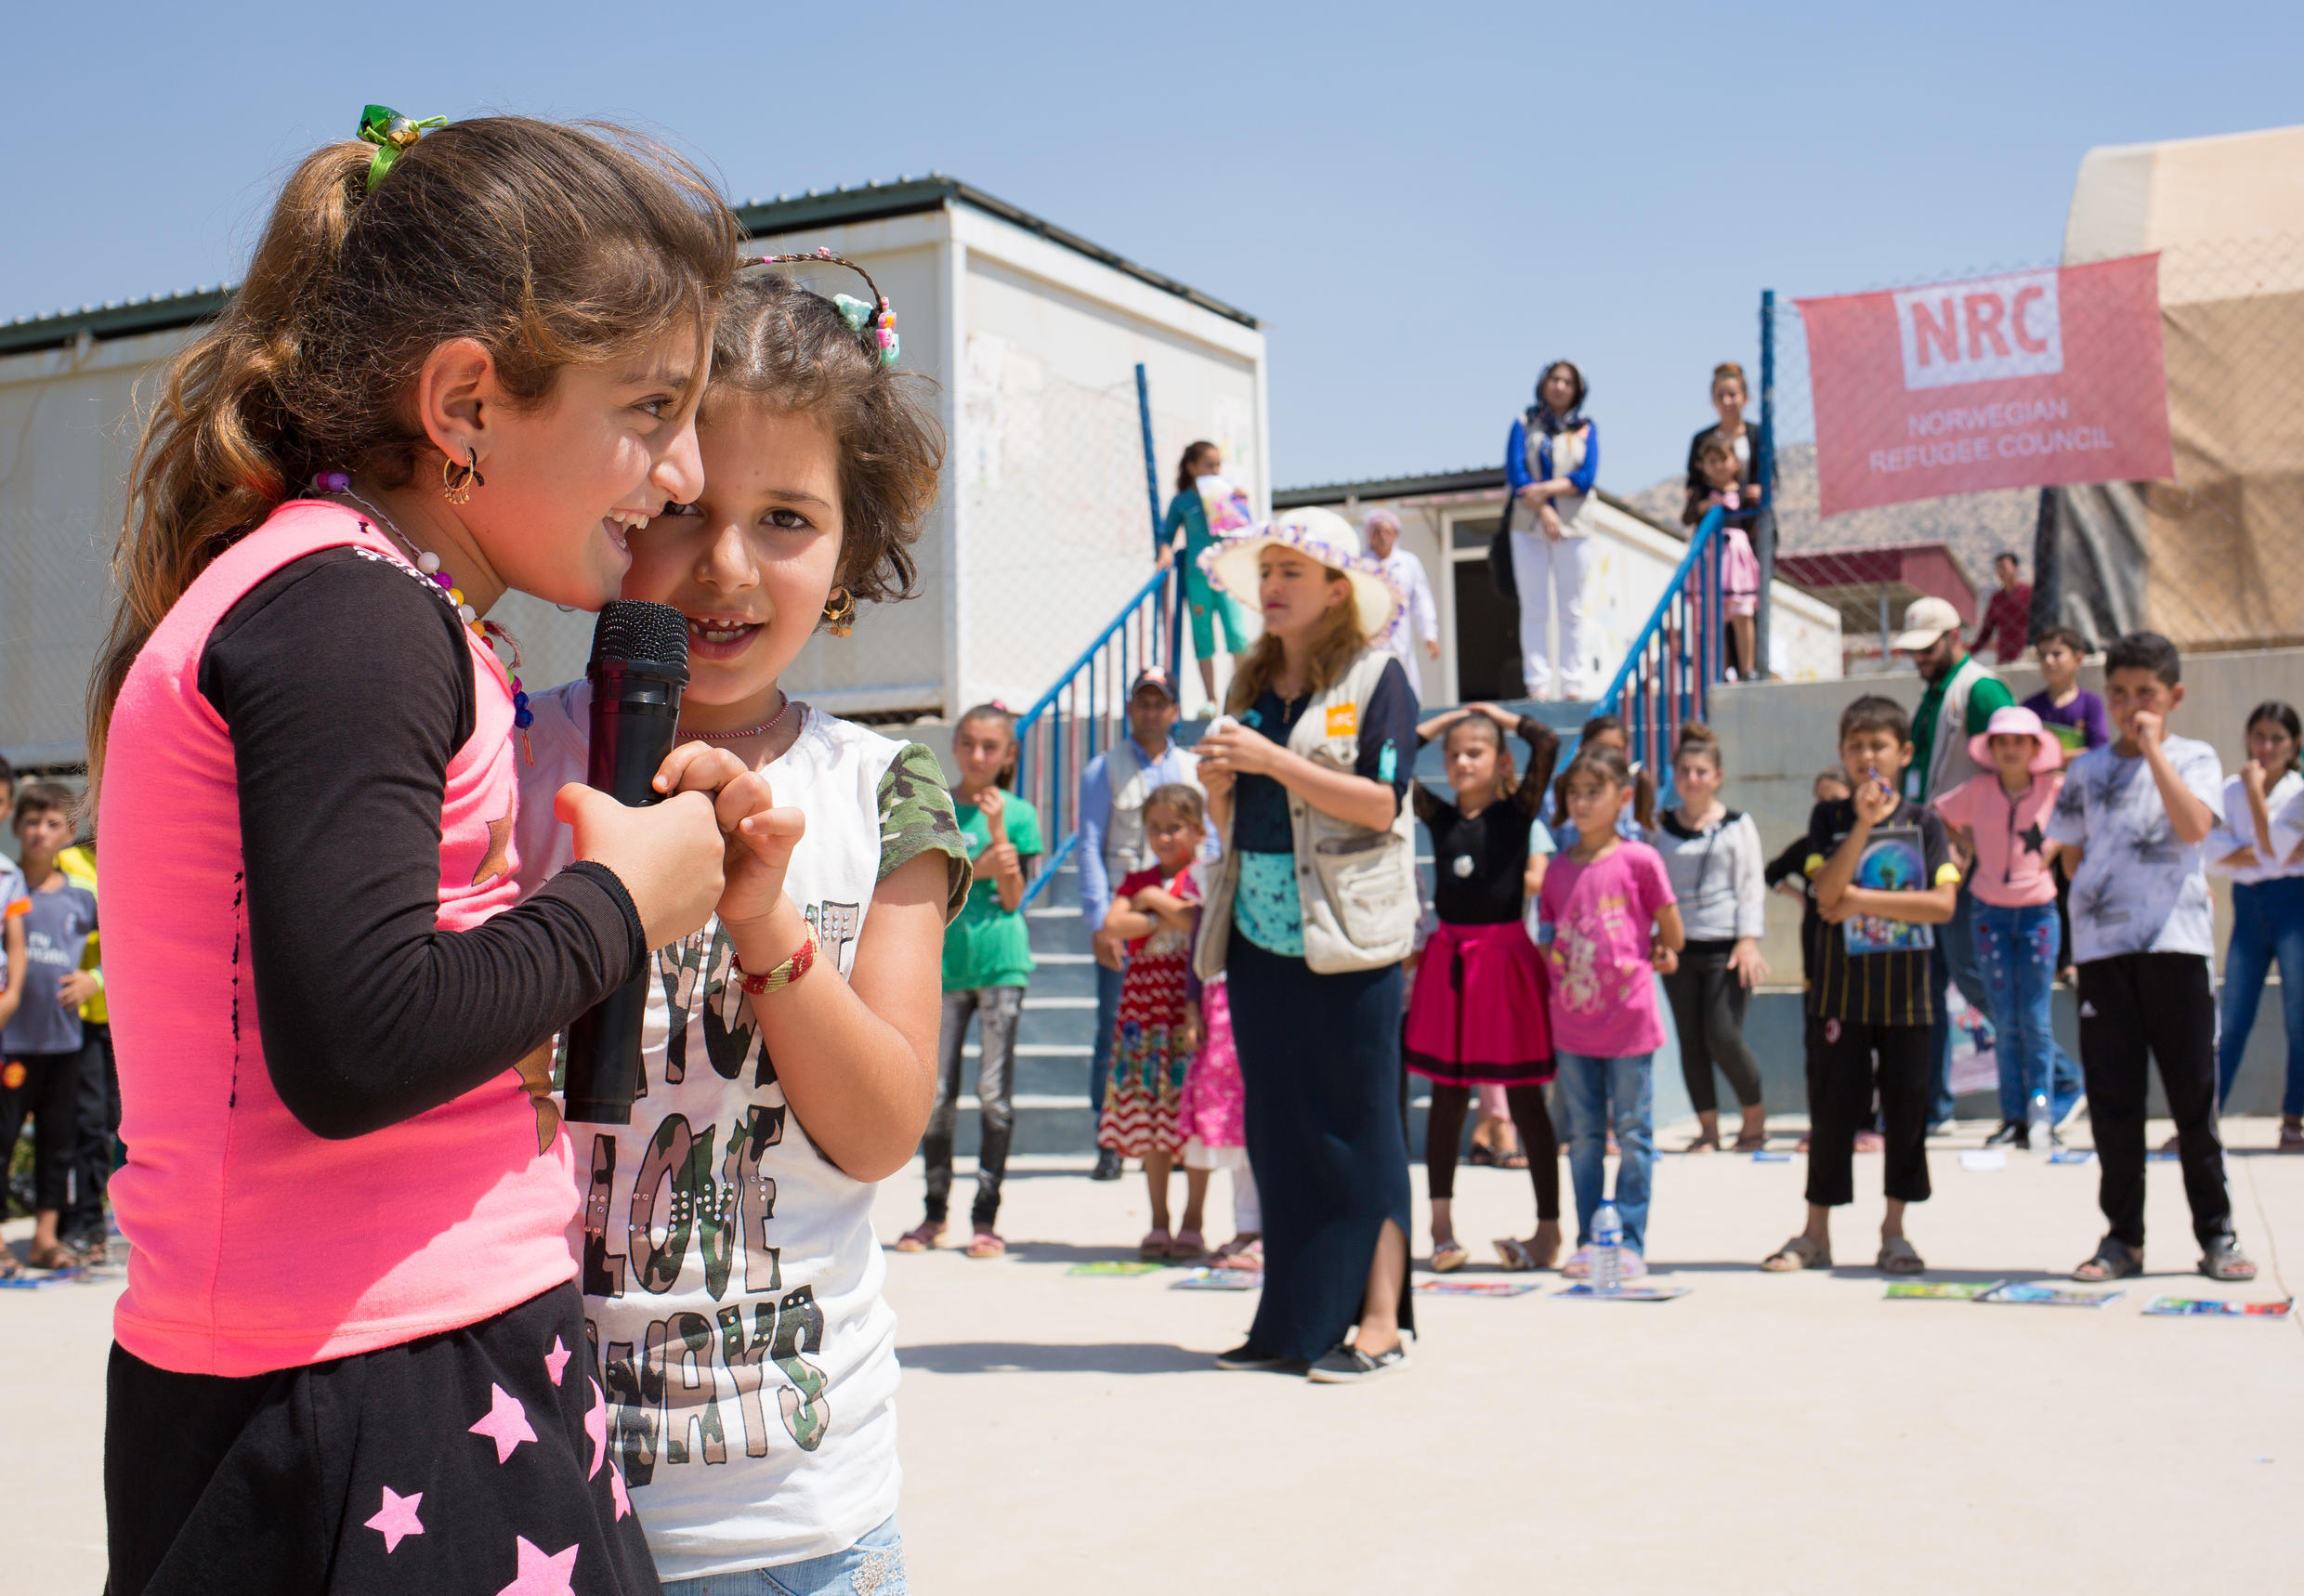 The NRC Education team from Dohuk organises recreational activities with Yezidi children in Qadiya camp. This allows them to learn how to manage their stress and overcome their traumas.